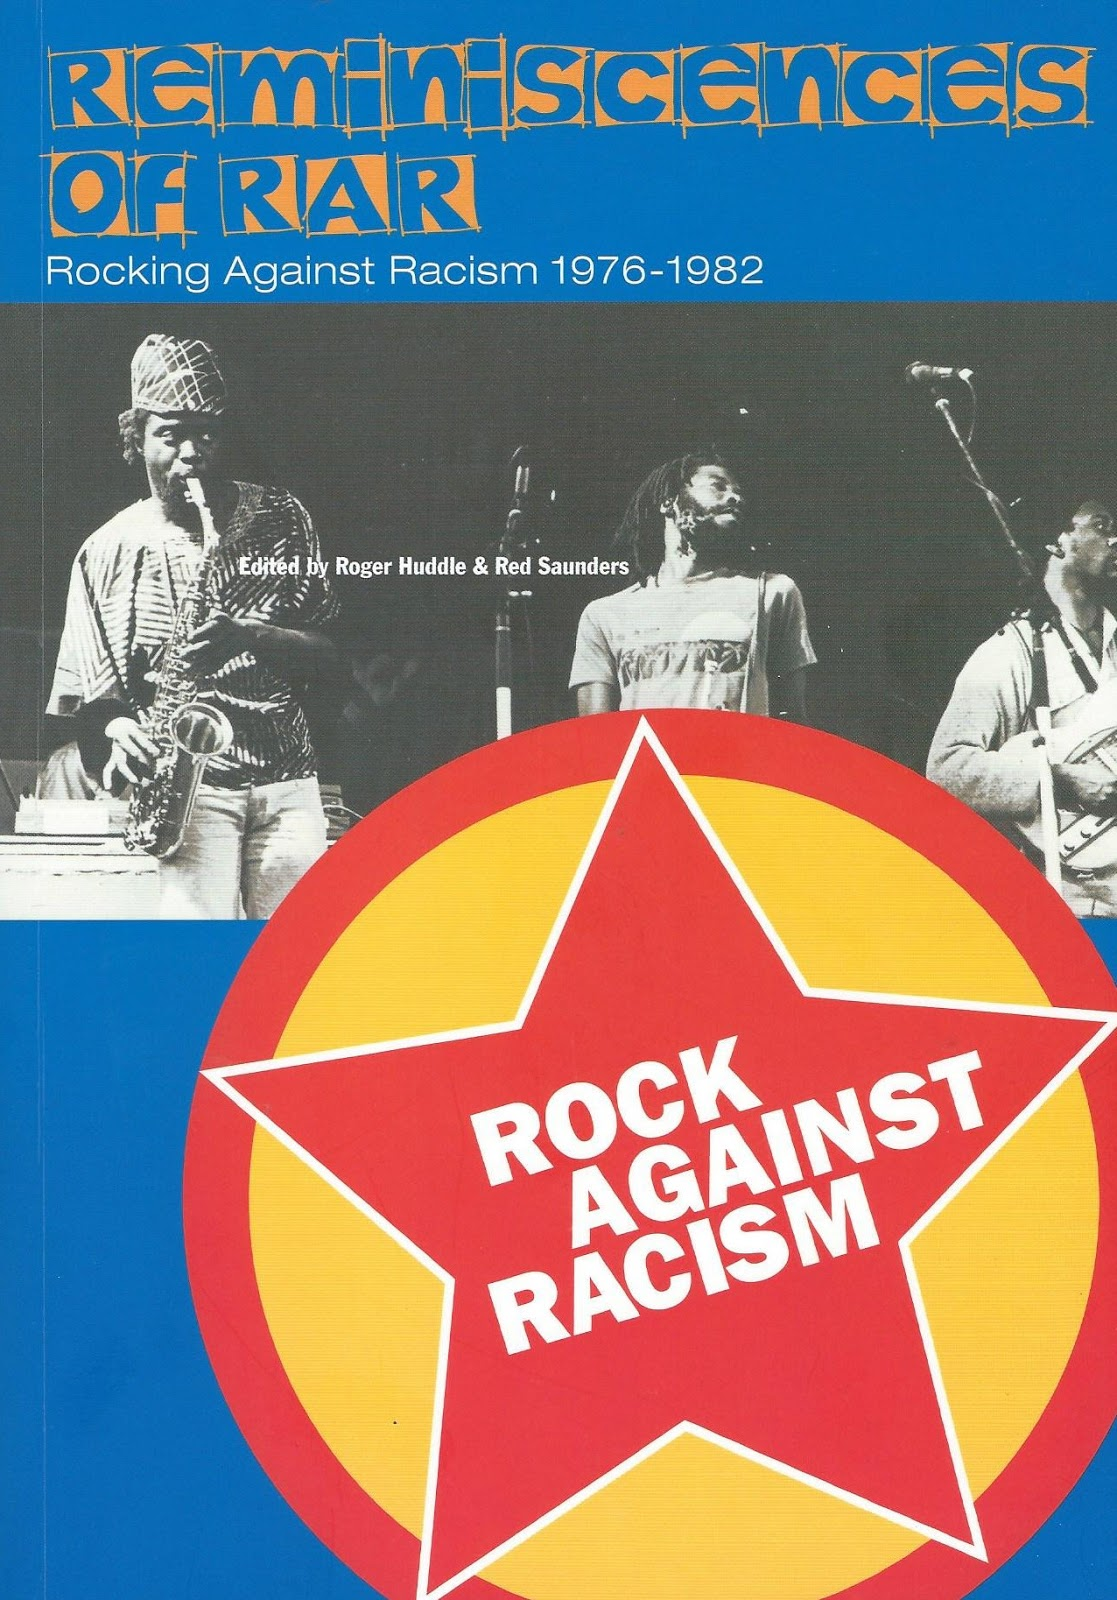 E7 Now & Then: Forest Gate: scene of Rock Against Racism's